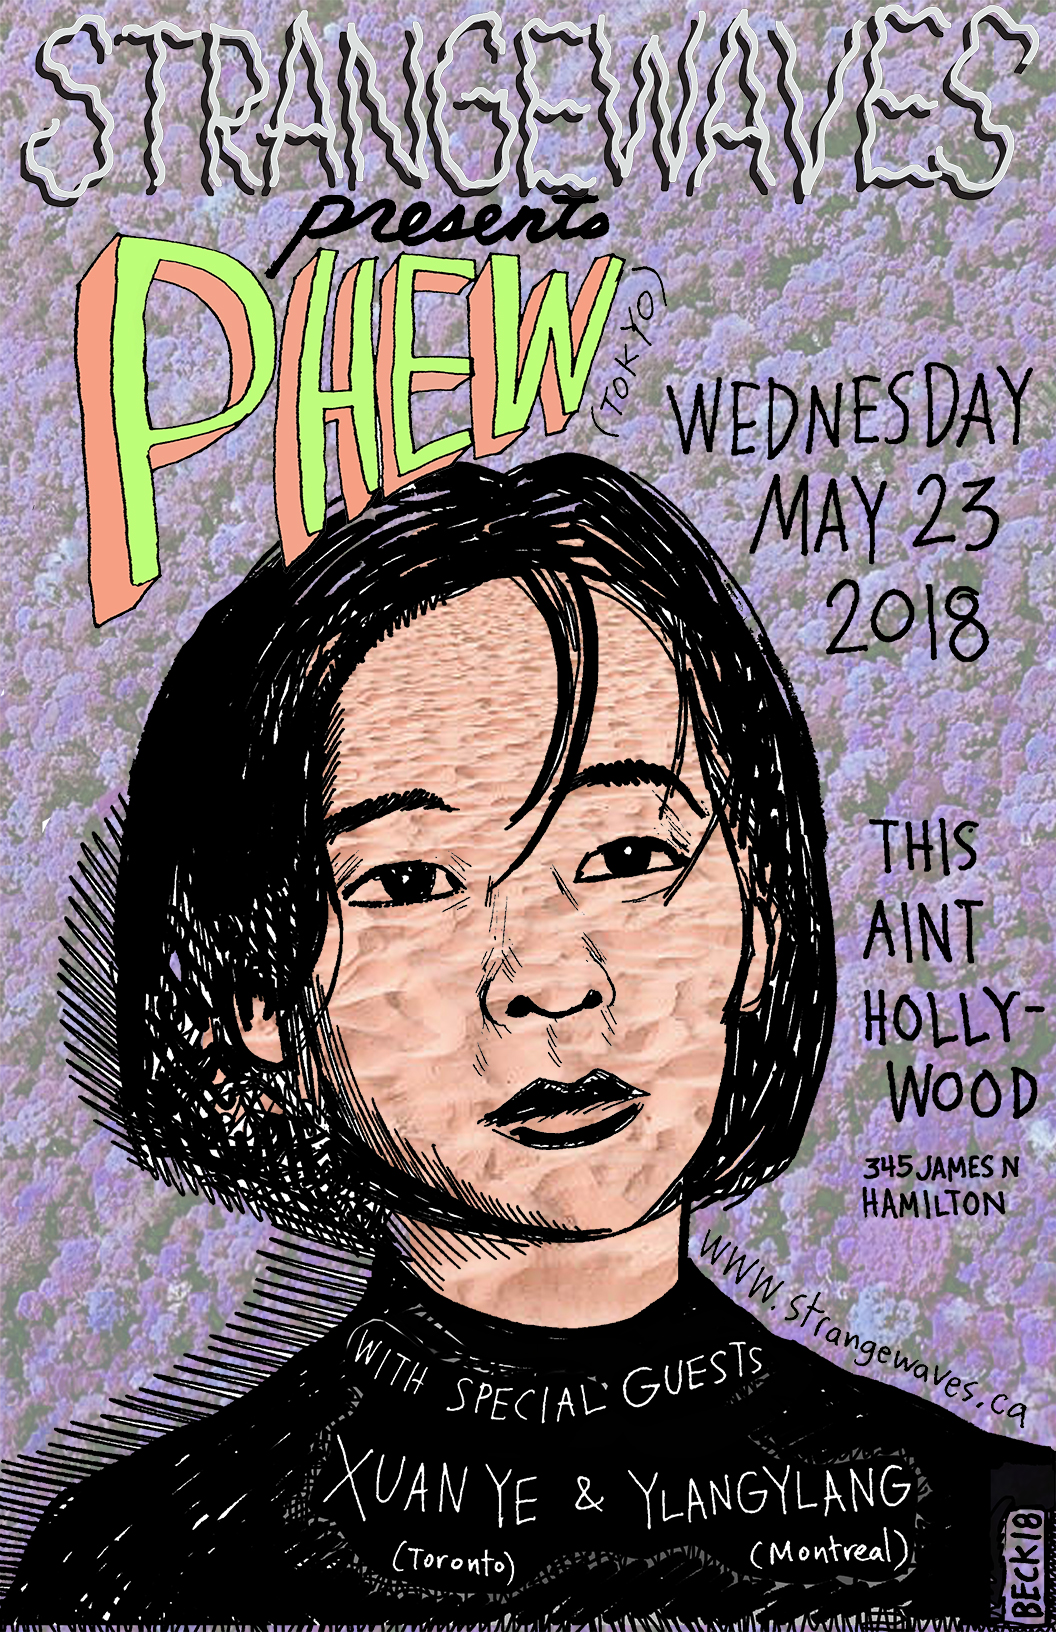 PHEW (Japanese legend) with YlangYlang & Xuan Ye  @This Ain't Hollywood